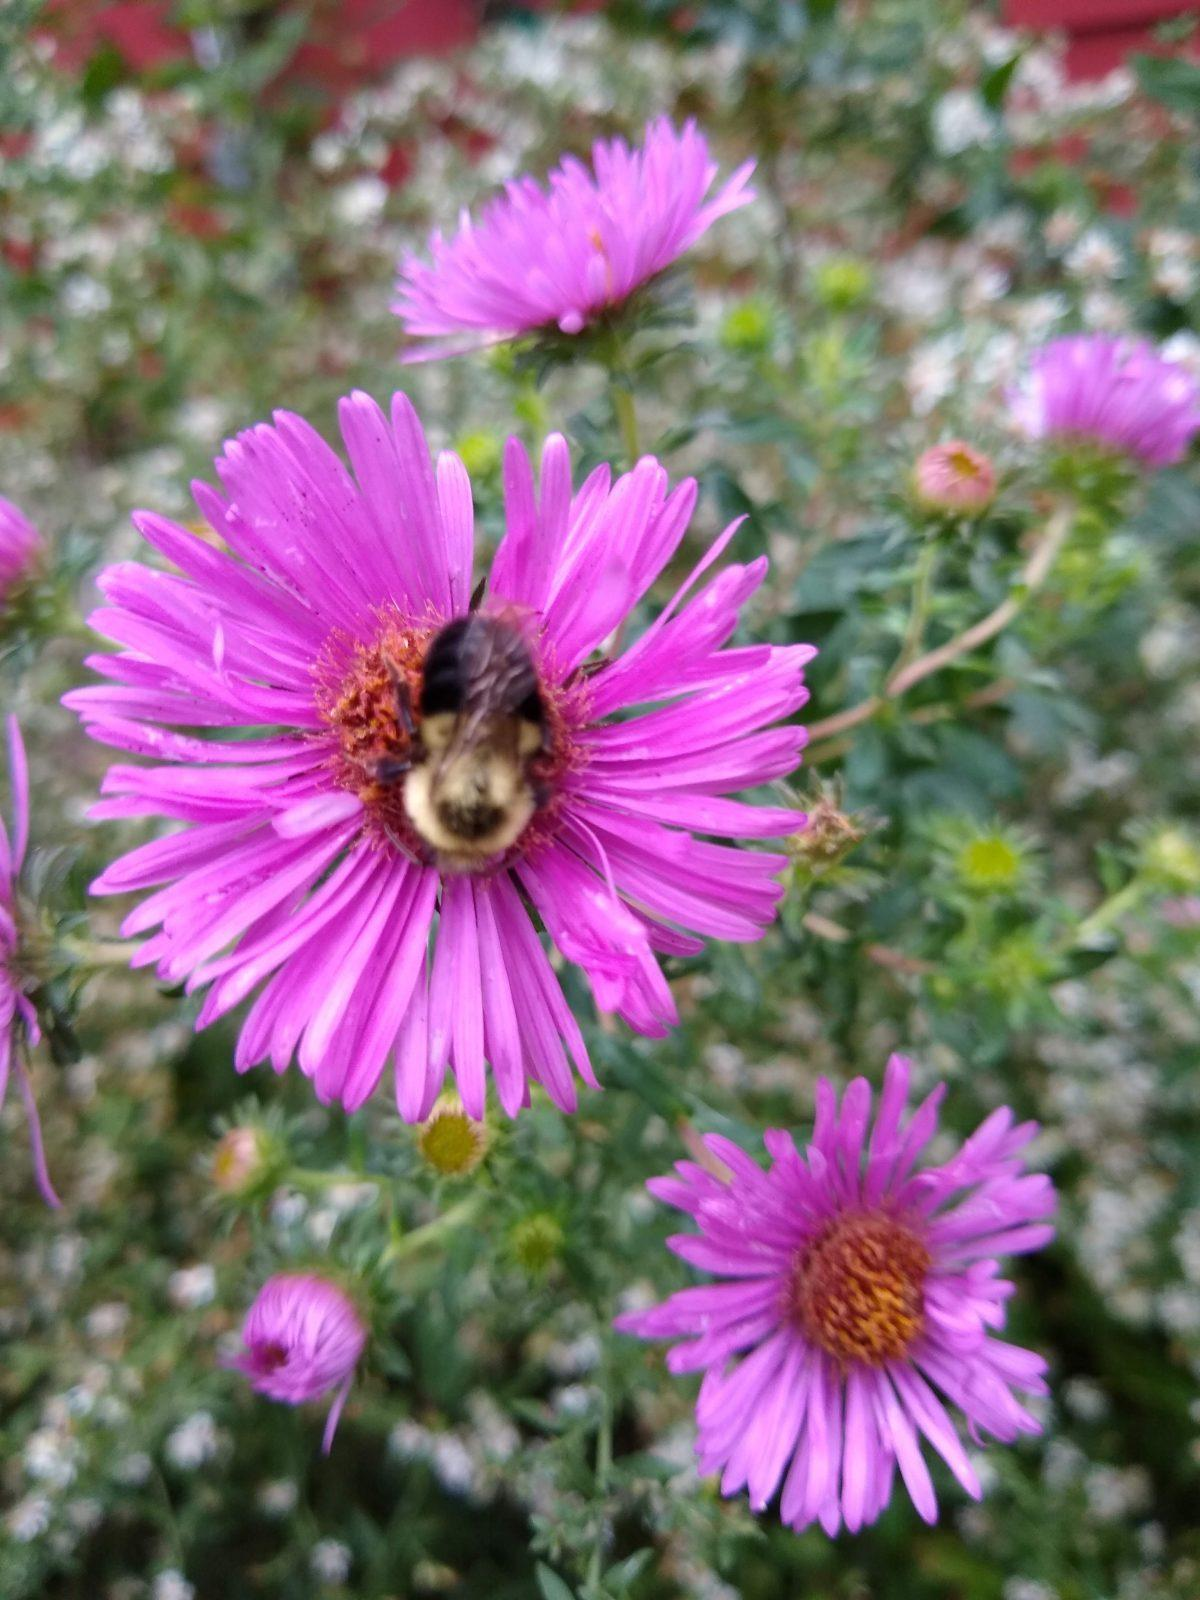 purple flower of an aster with a bee in the middle